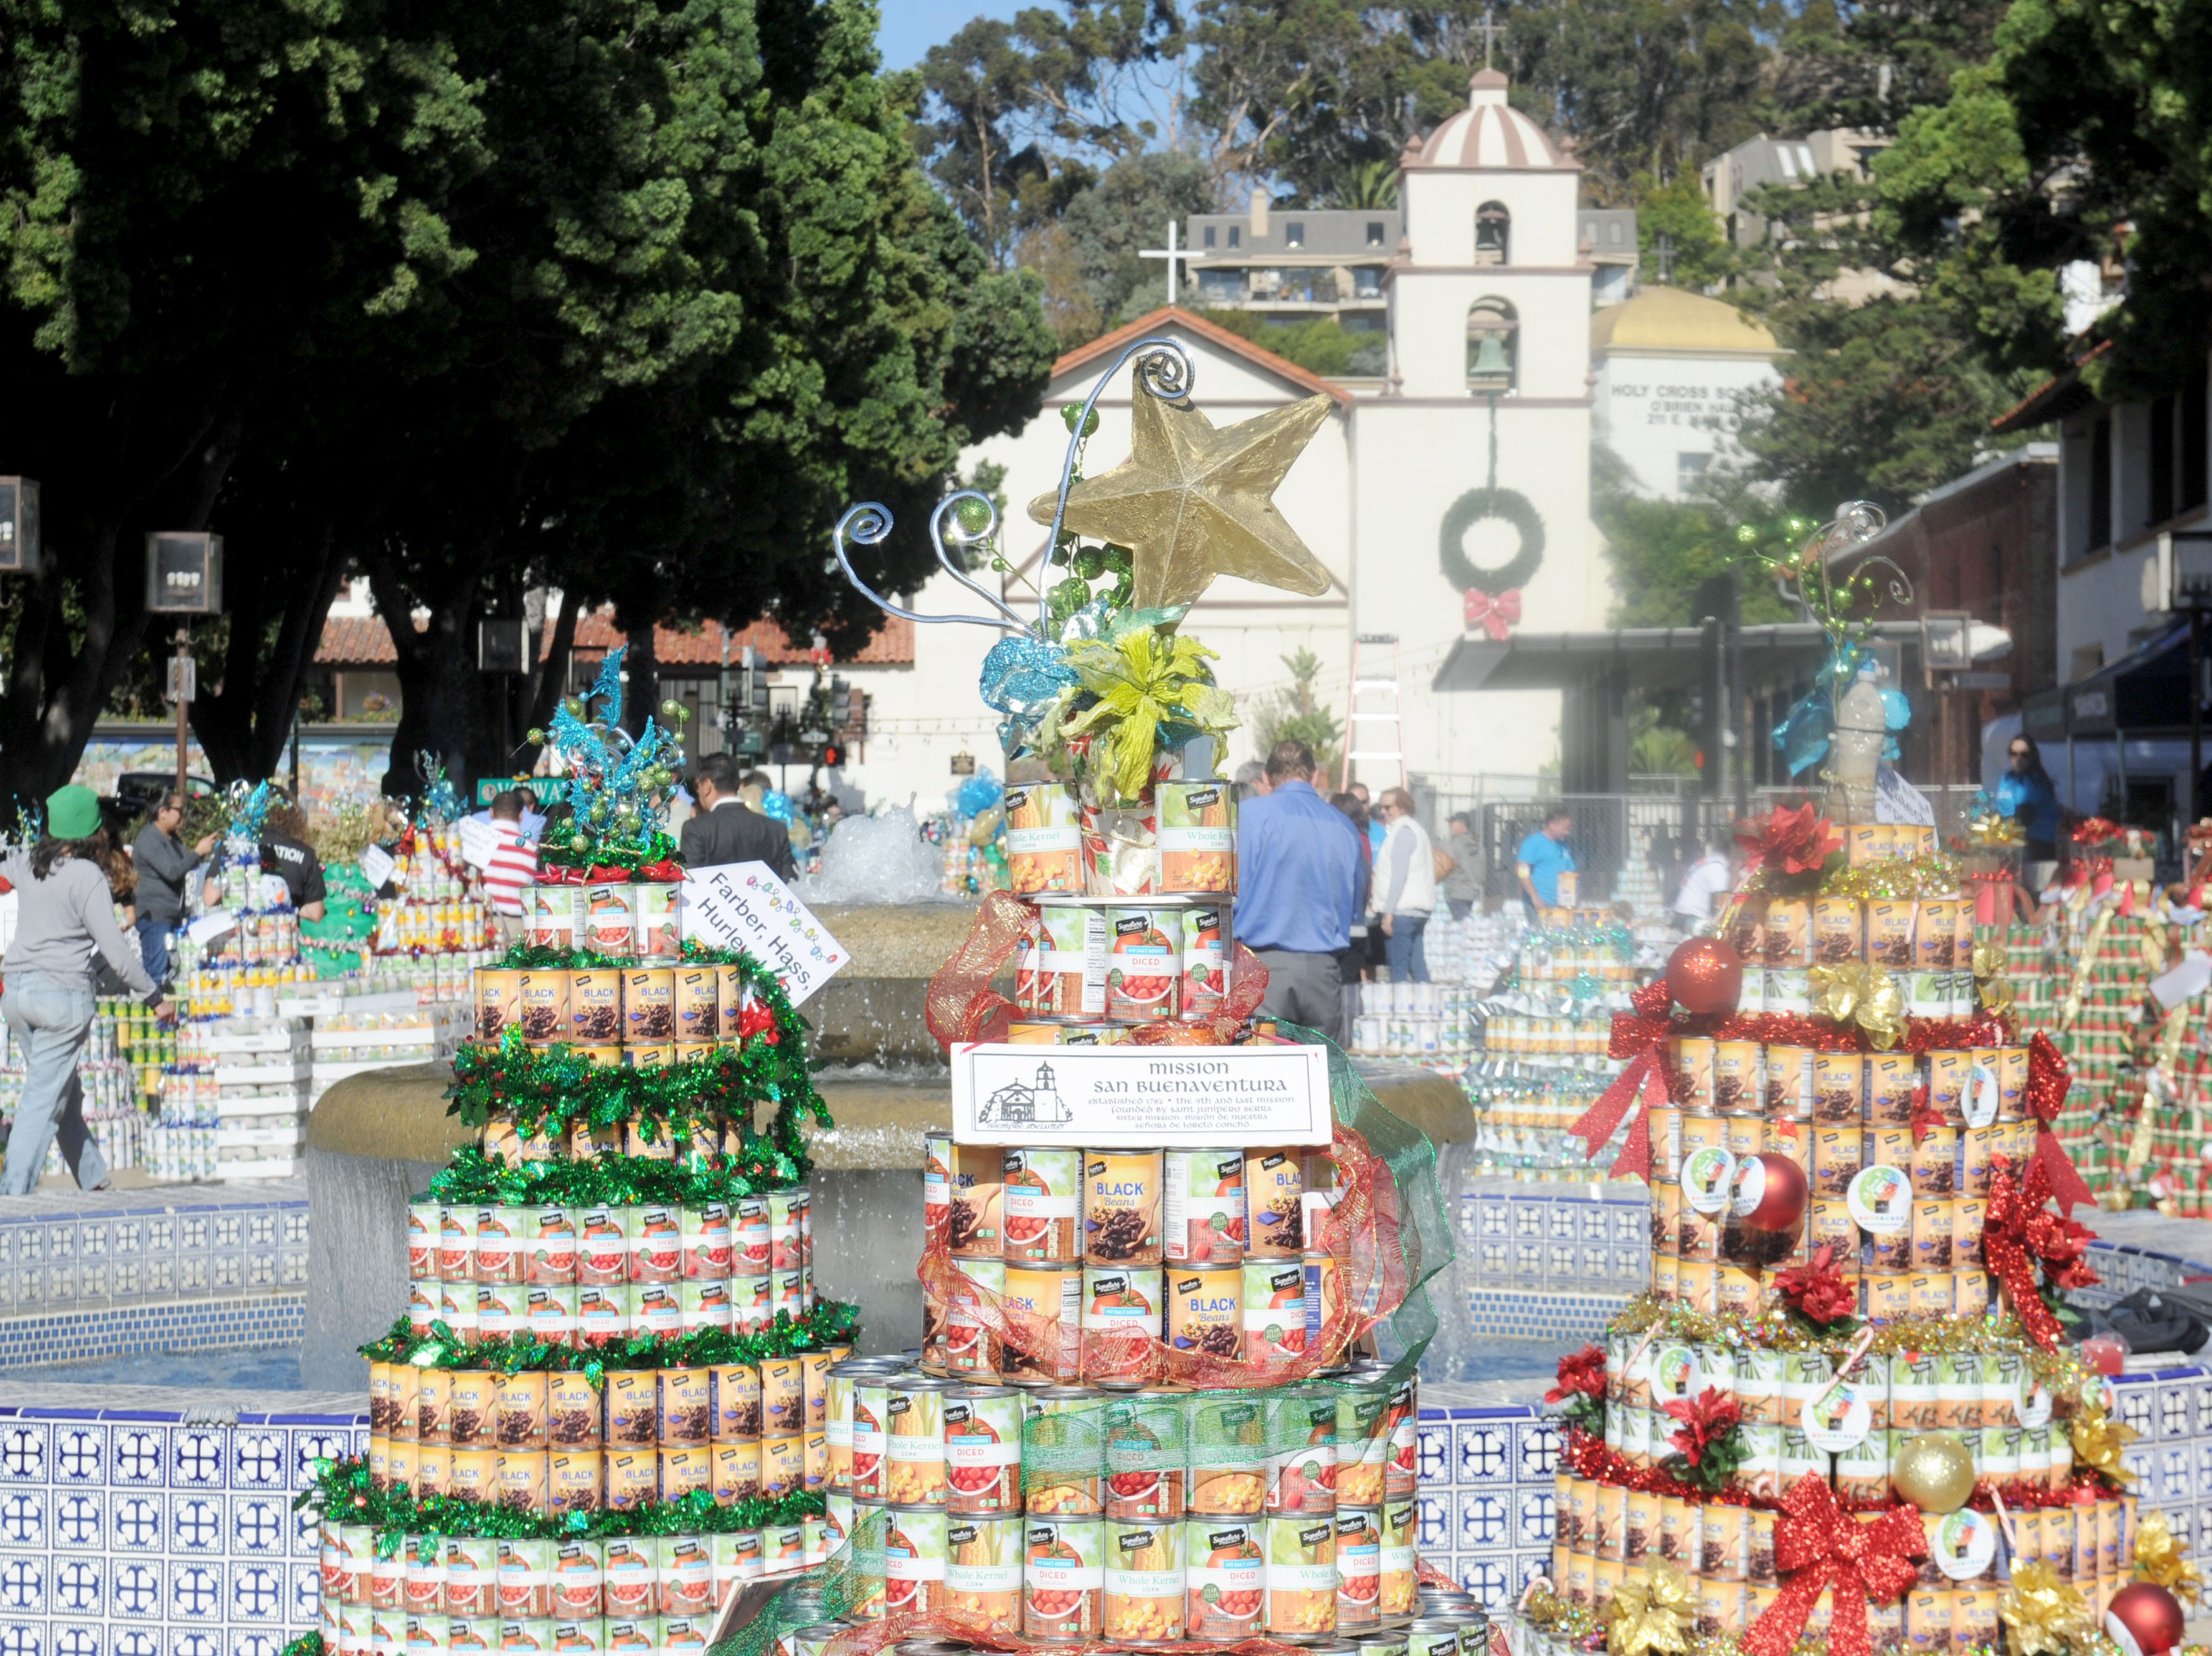 Mission San Buenaventura serves as a backdrop for can trees being built as part of FOOD Share's annual CAN-tree drive in downtown Ventura at Figueroa Plaza.